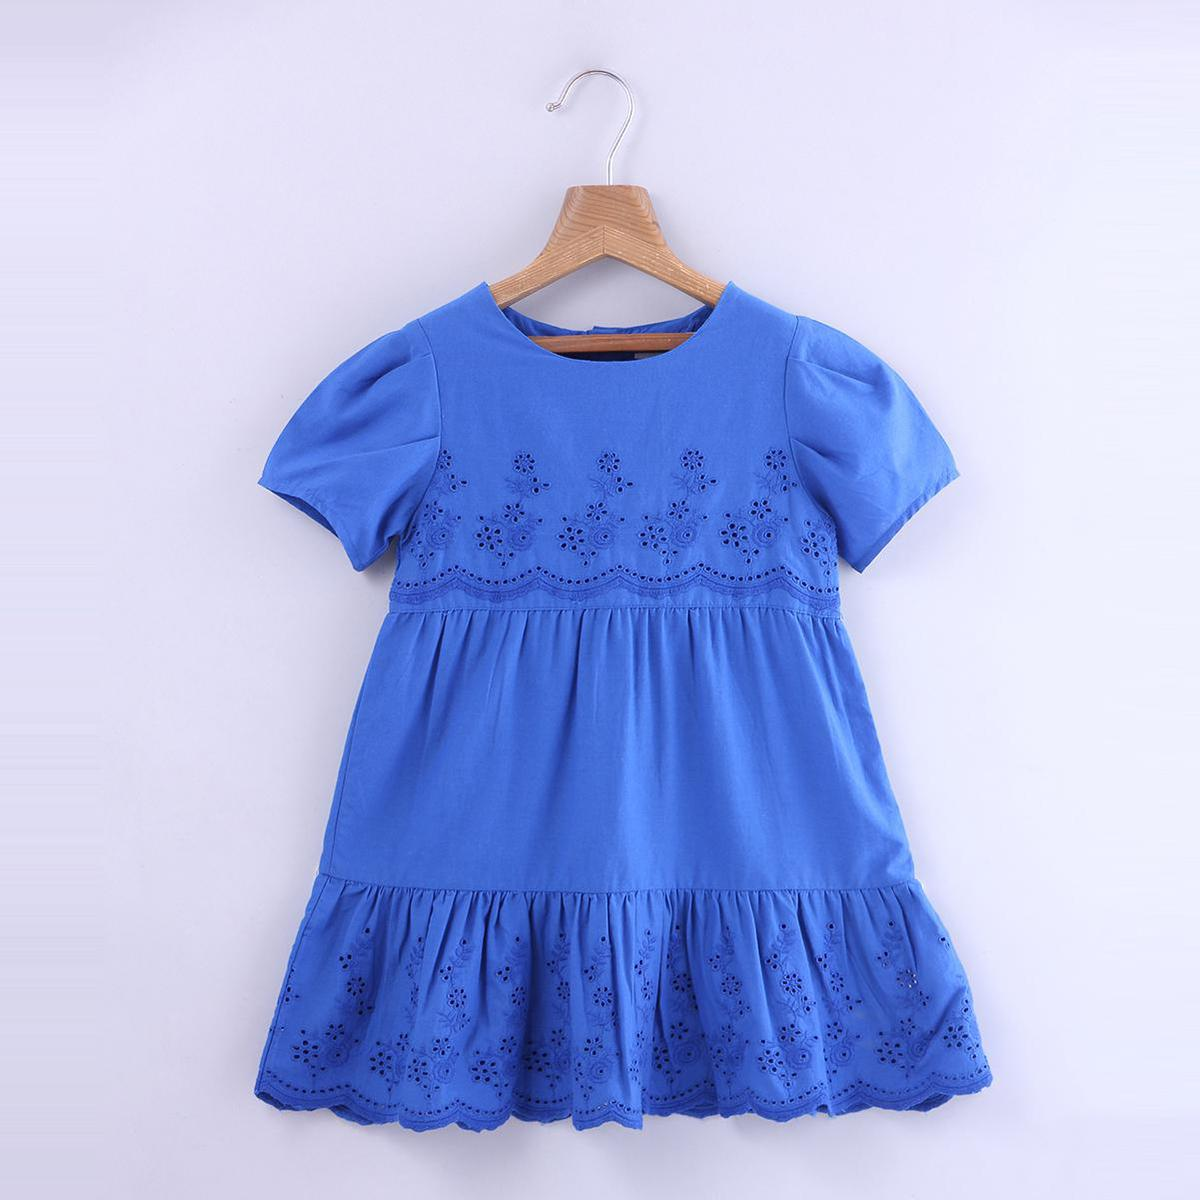 Beebay - Blue Colored Schiffli Embroidered Cotton Dress For Girls